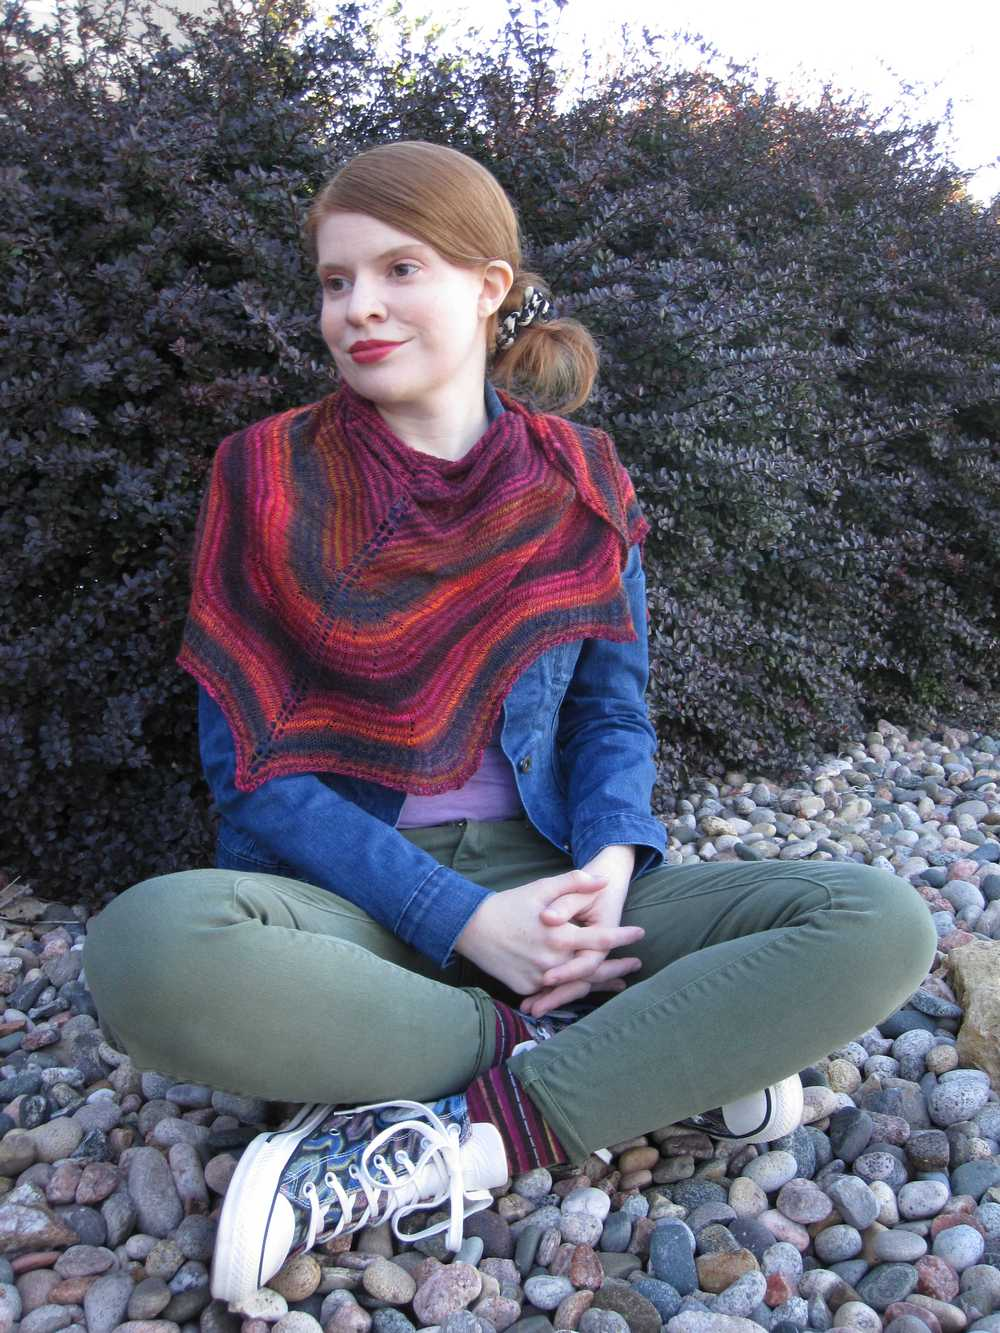 Rosita shawlette wrapped around shoulders kerchief style